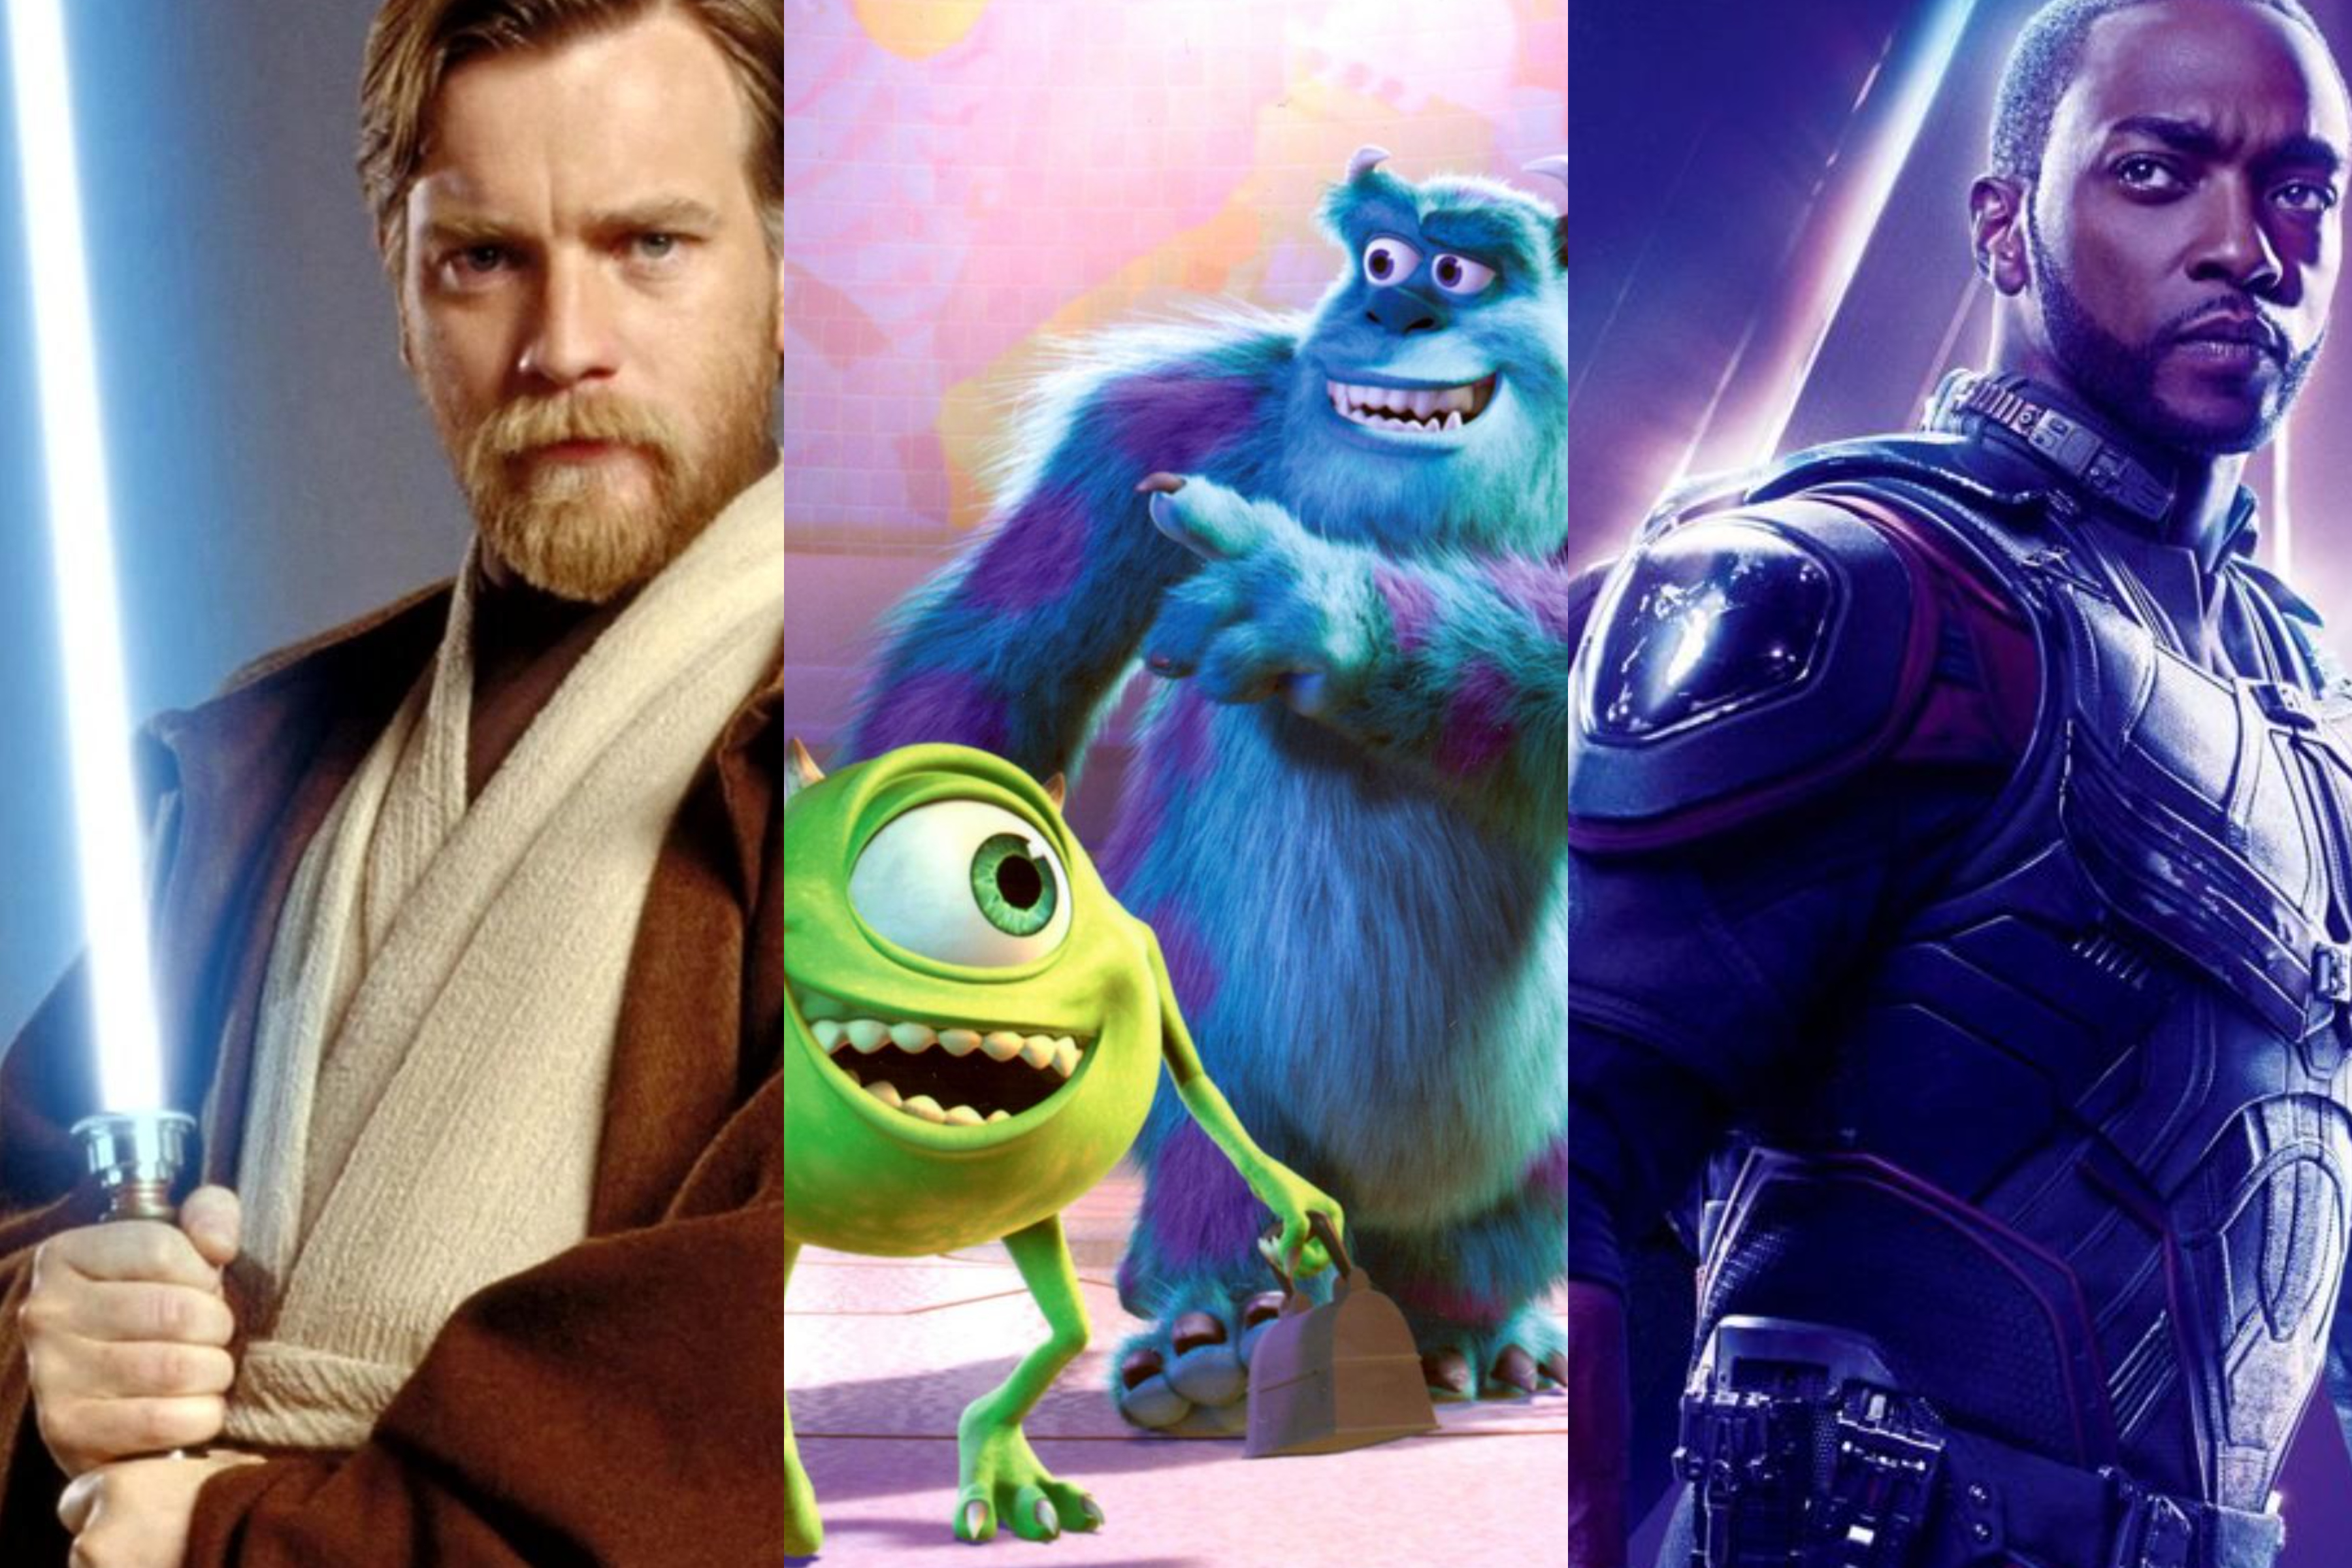 Left to right: Obi-Wan Kenobi; Mike and Sully, and Sam Wilson/The Falcon.